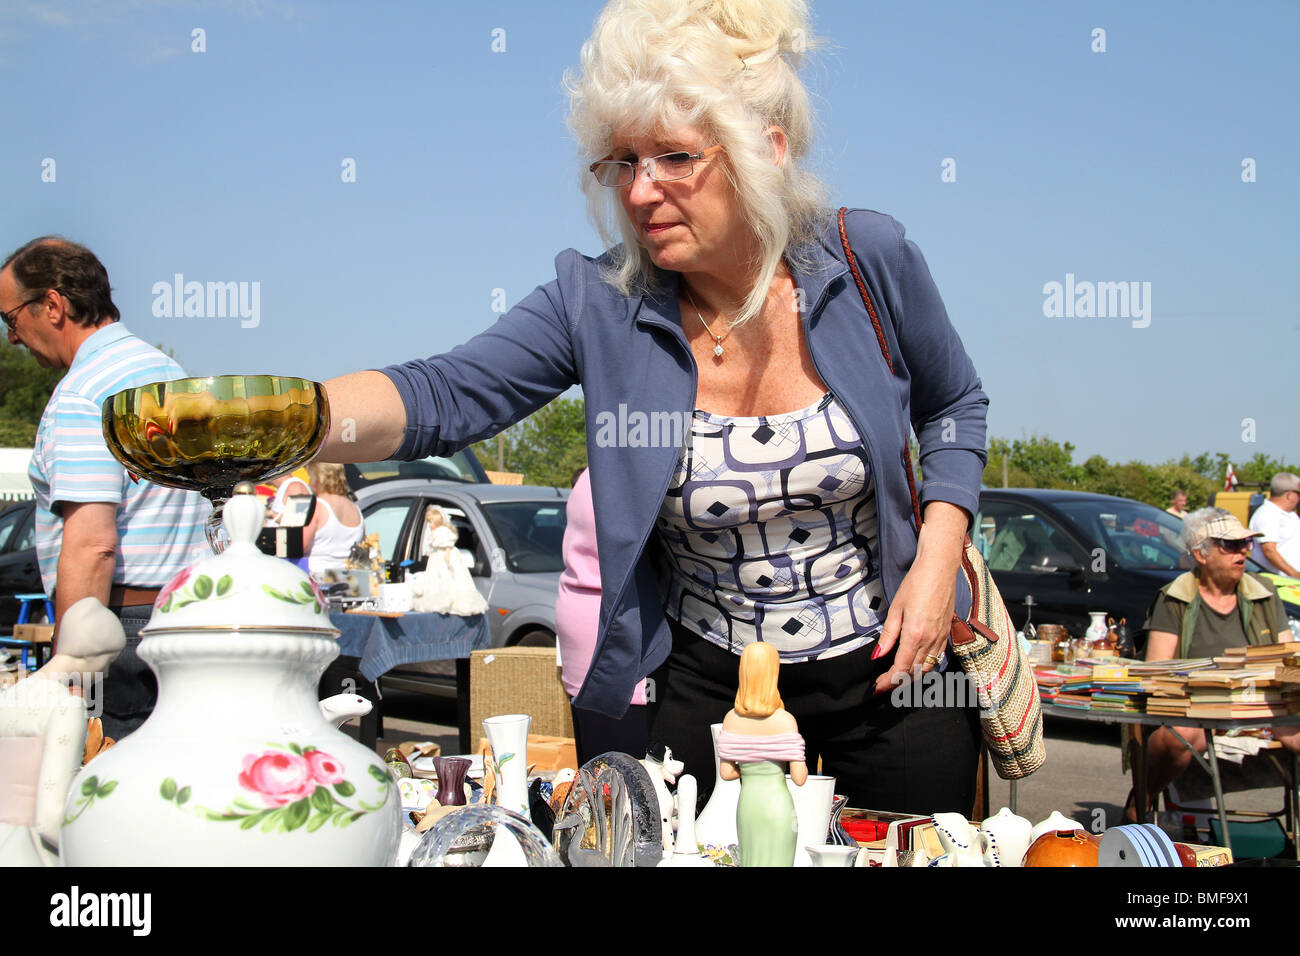 Woman making a purchase at a car boot sale. - Stock Image